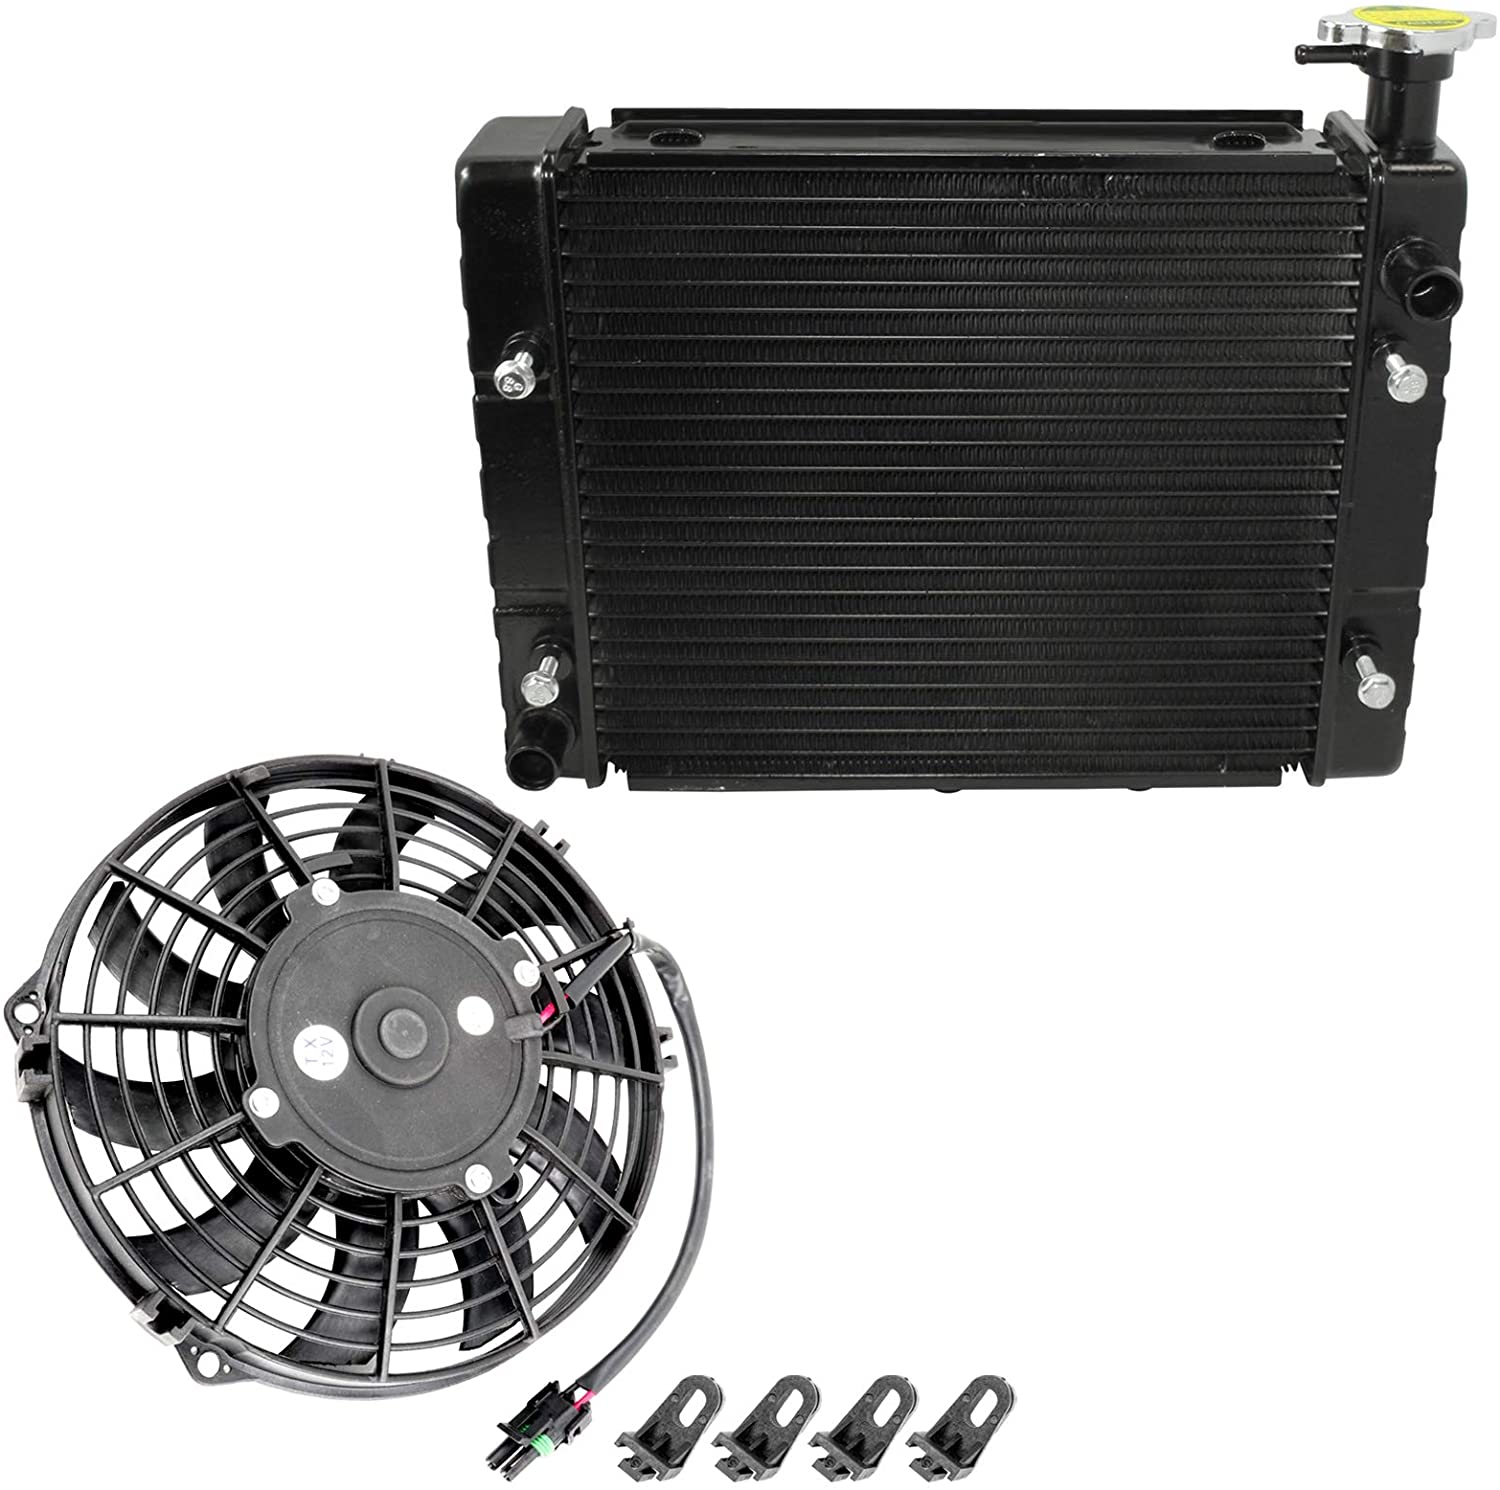 Caltric Radiator Cooling Fan for Can-Am Outlander 800/ Max 800 4X4 Std Xt Ltd 2006 2007 2008